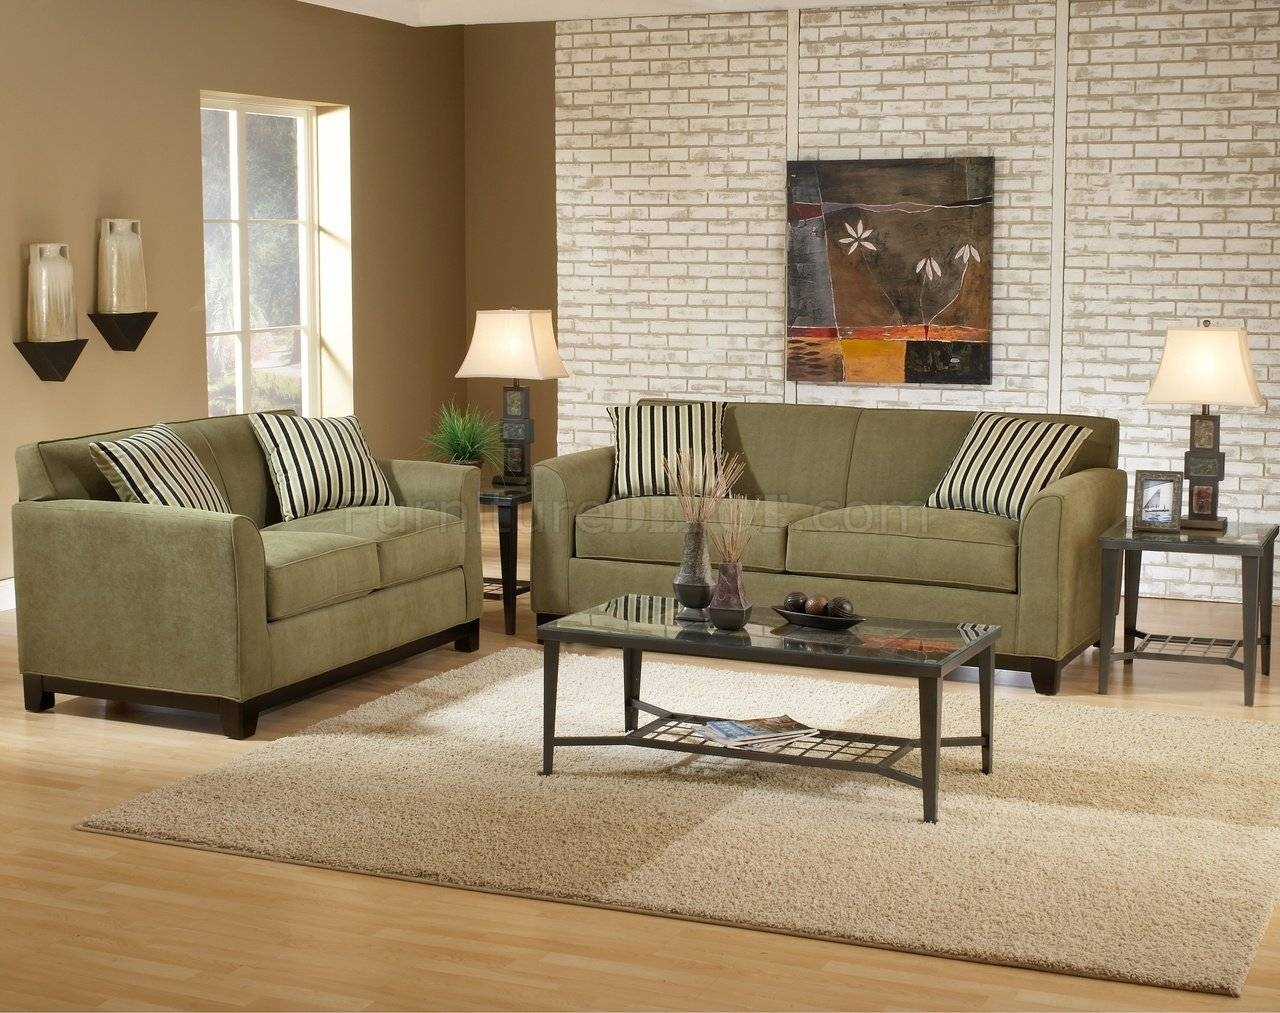 Sage Fabric Casual Modern Living Room Sofa & Loveseat Set Inside Casual Sofas And Chairs (View 14 of 15)